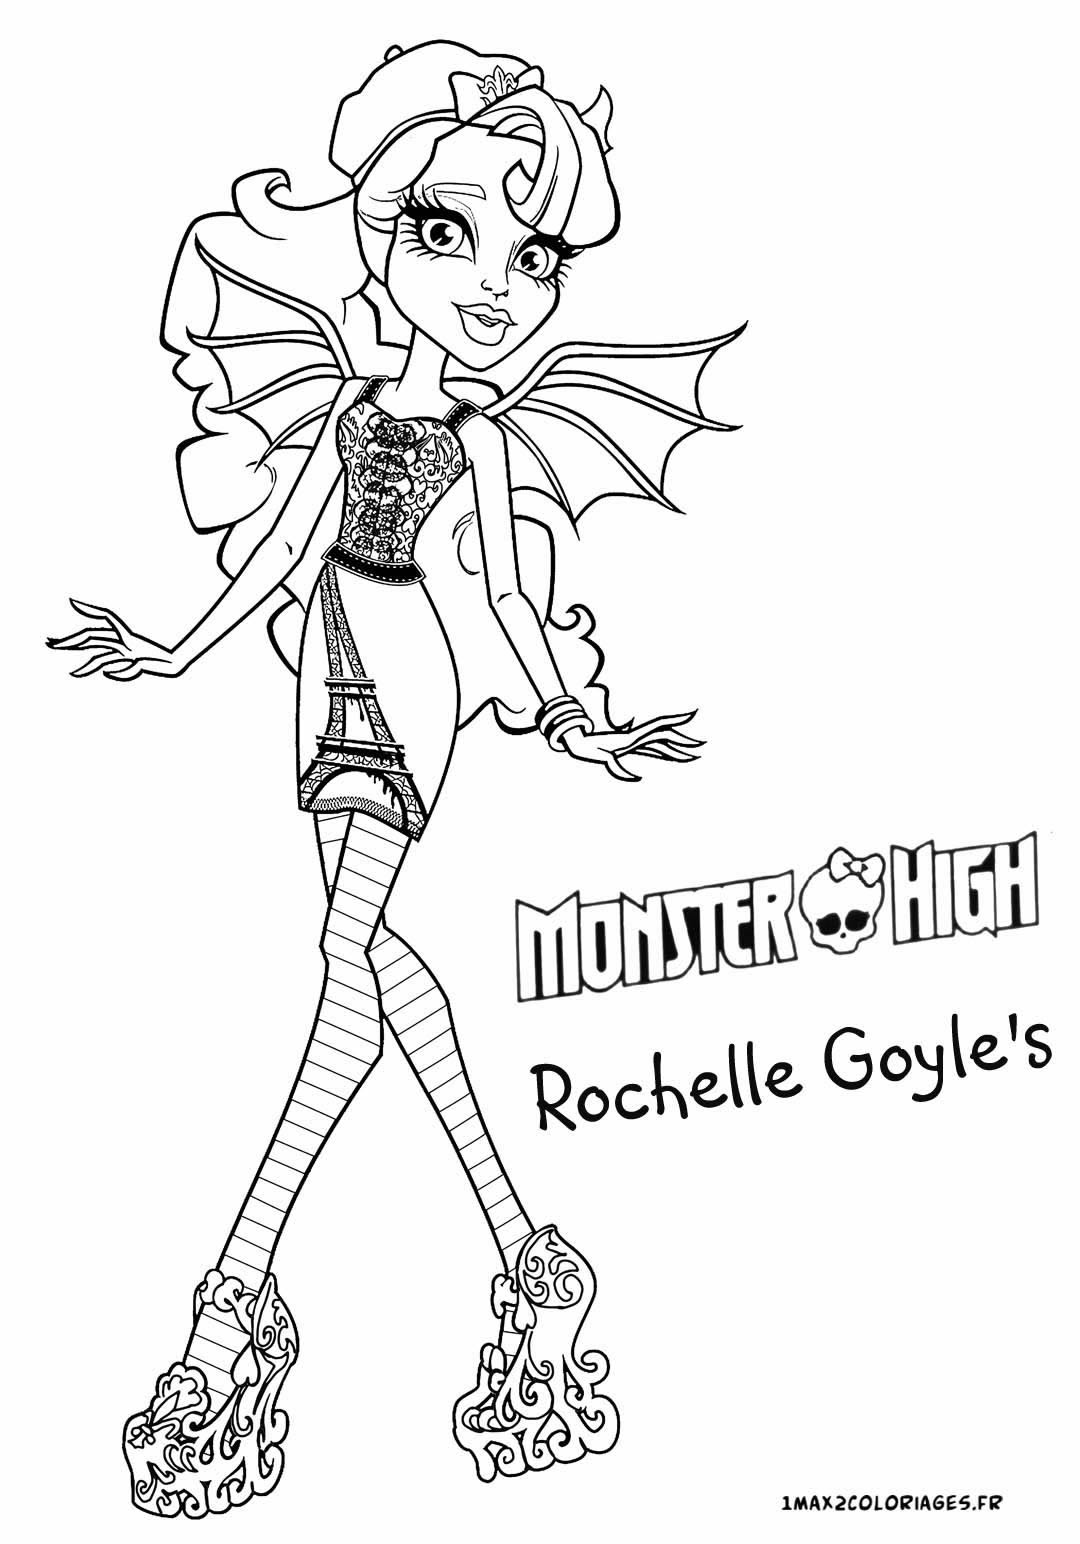 Coloriage monster high imprimer gratuit tattoo design bild - Coloriage de monster ...